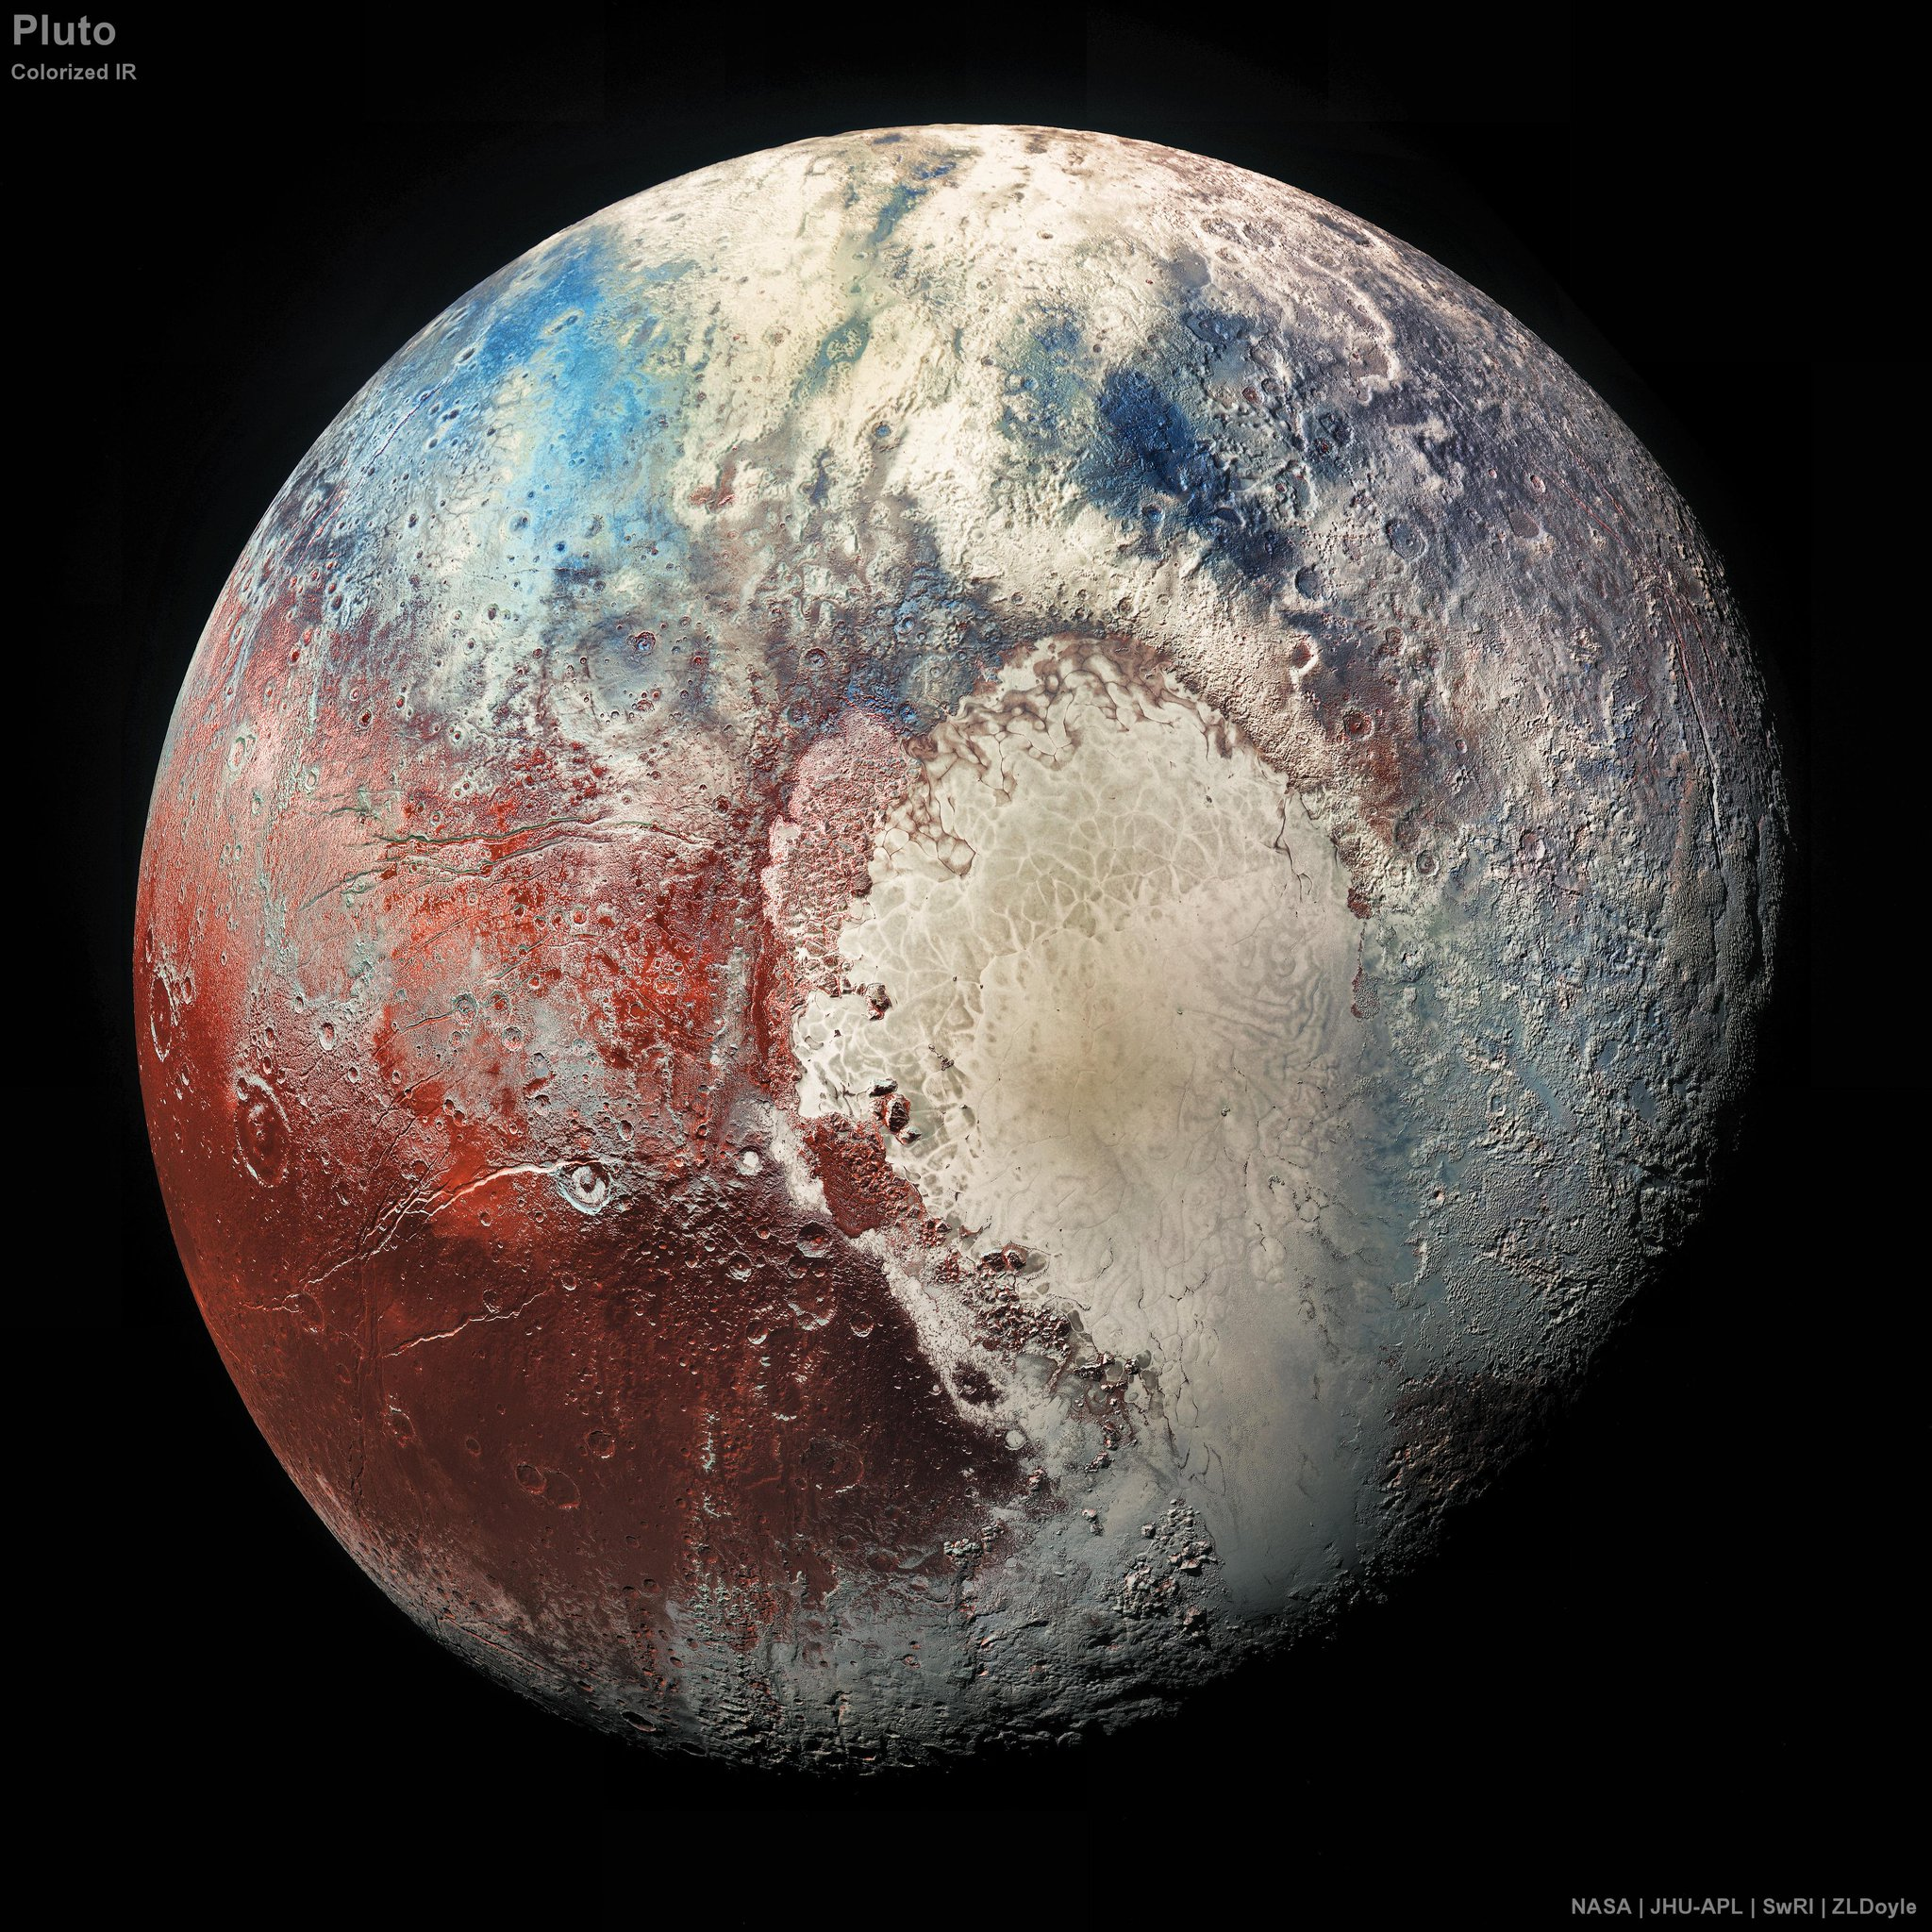 Newest & Clearest photo of Pluto https://t.co/bhlpeMYTHc